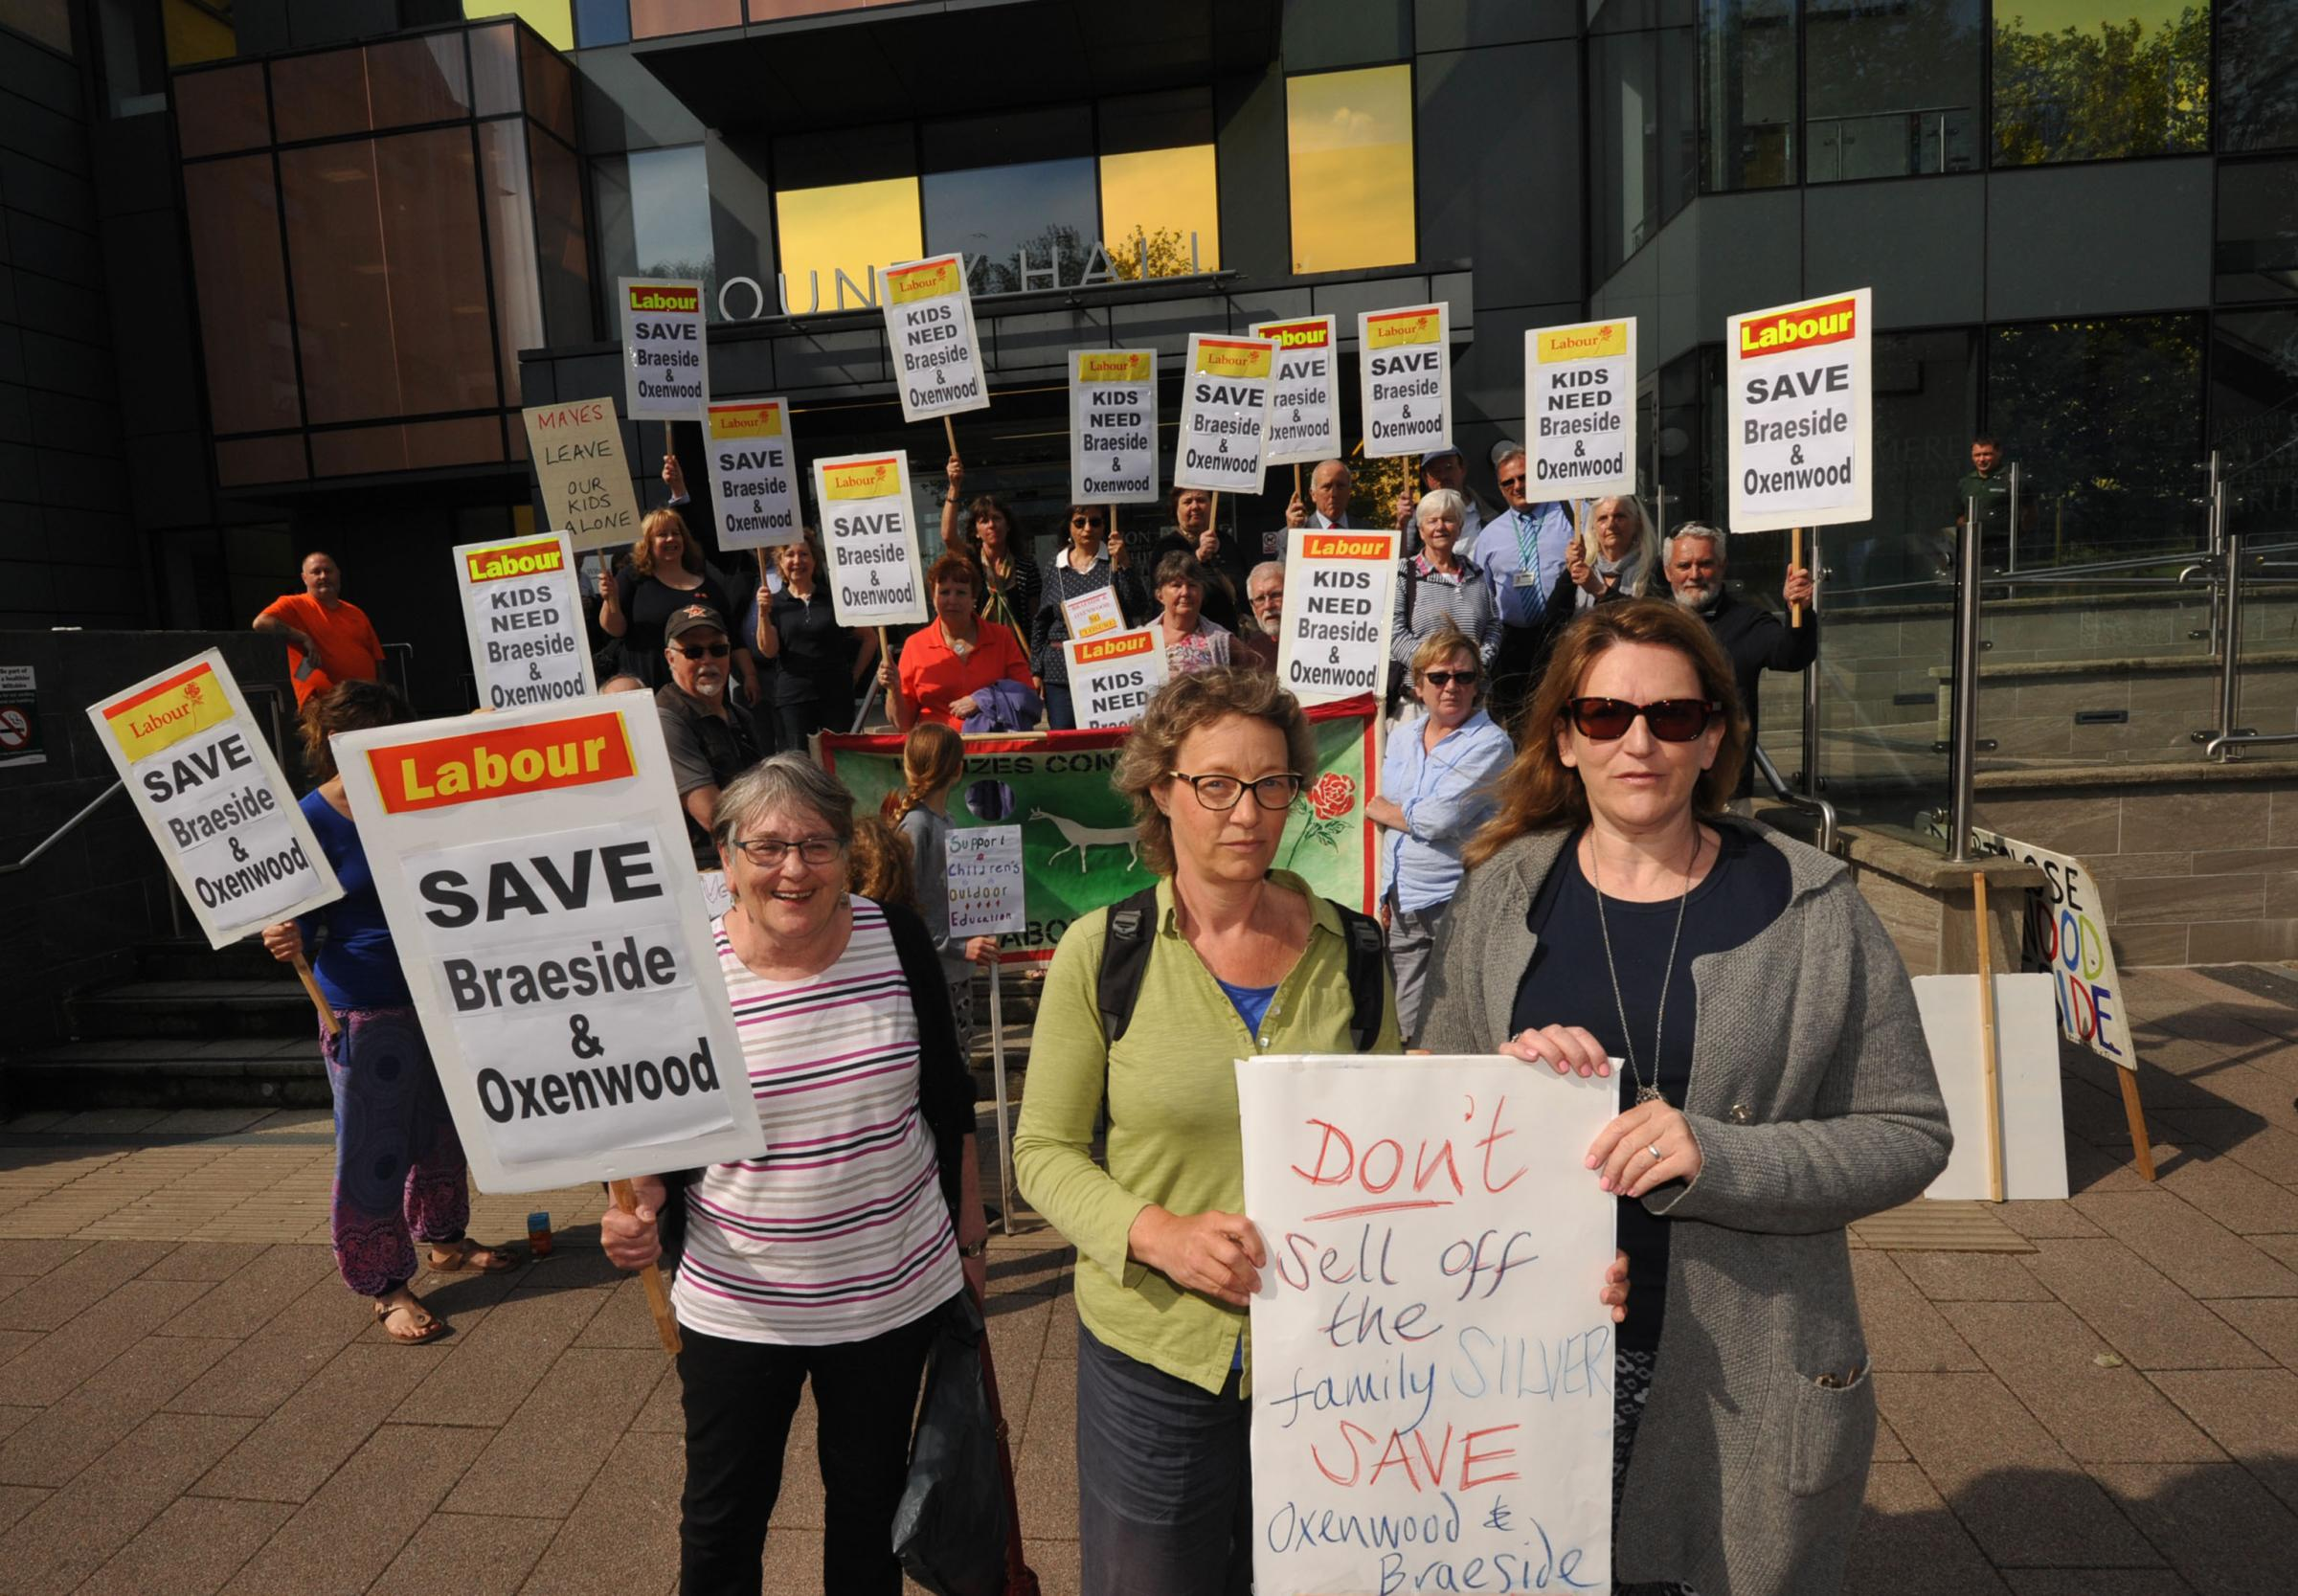 Braeside protest County Hall.  Sylvia Card,  Rachel Ross and and Lucy Gomes with Campaigners against the closure of Braeside and Oxenwood protest at County Hall Trowbridge.. Photo; Trevor Porter 59583 5..